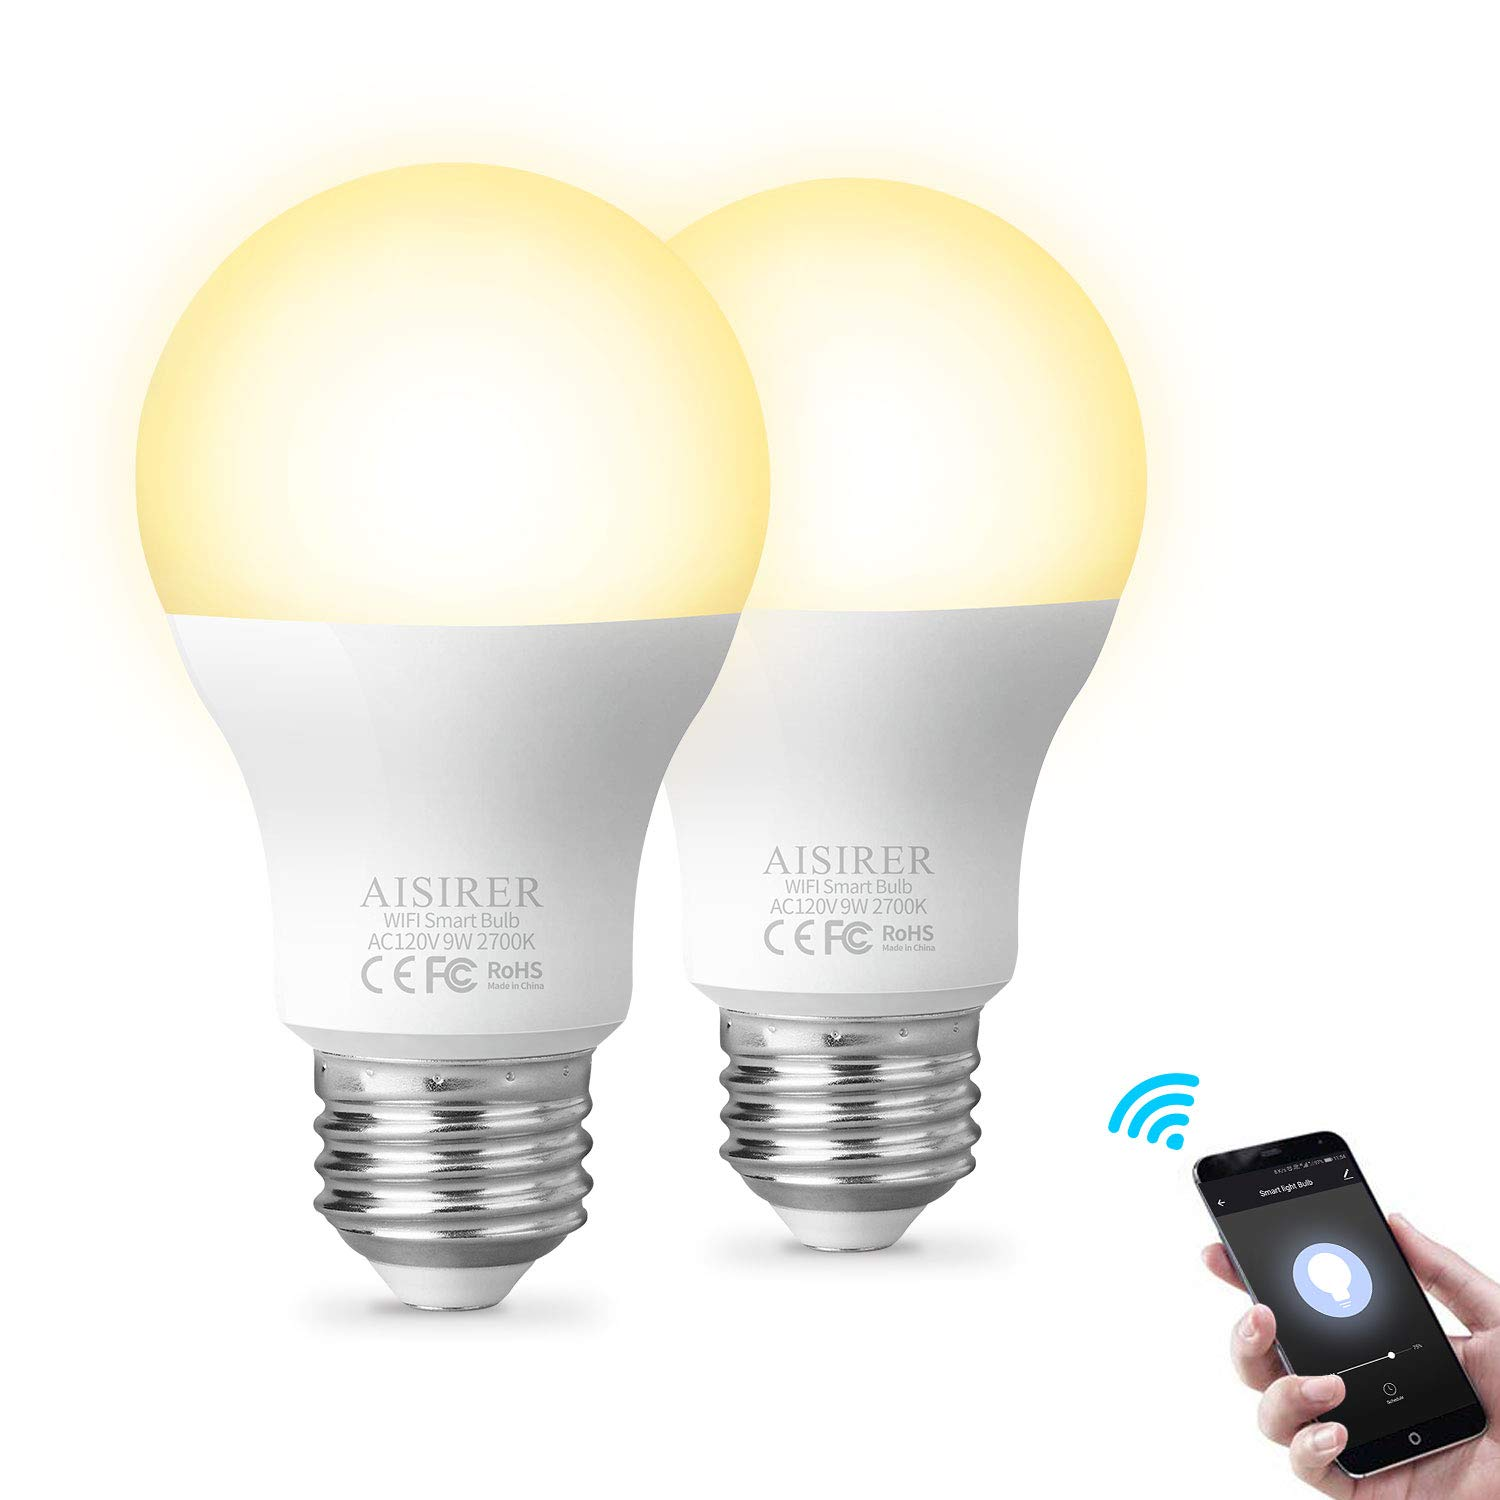 Smart Light Bulb WiFi A19 E26 LED Bulbs Compatible with Amazon Alexa Echo Google Home Assistant and IFTTT 9W Equivalent 60W Dimmable Warm Light 2700K No Hub Required 806LM AISIRER (2 Pack)